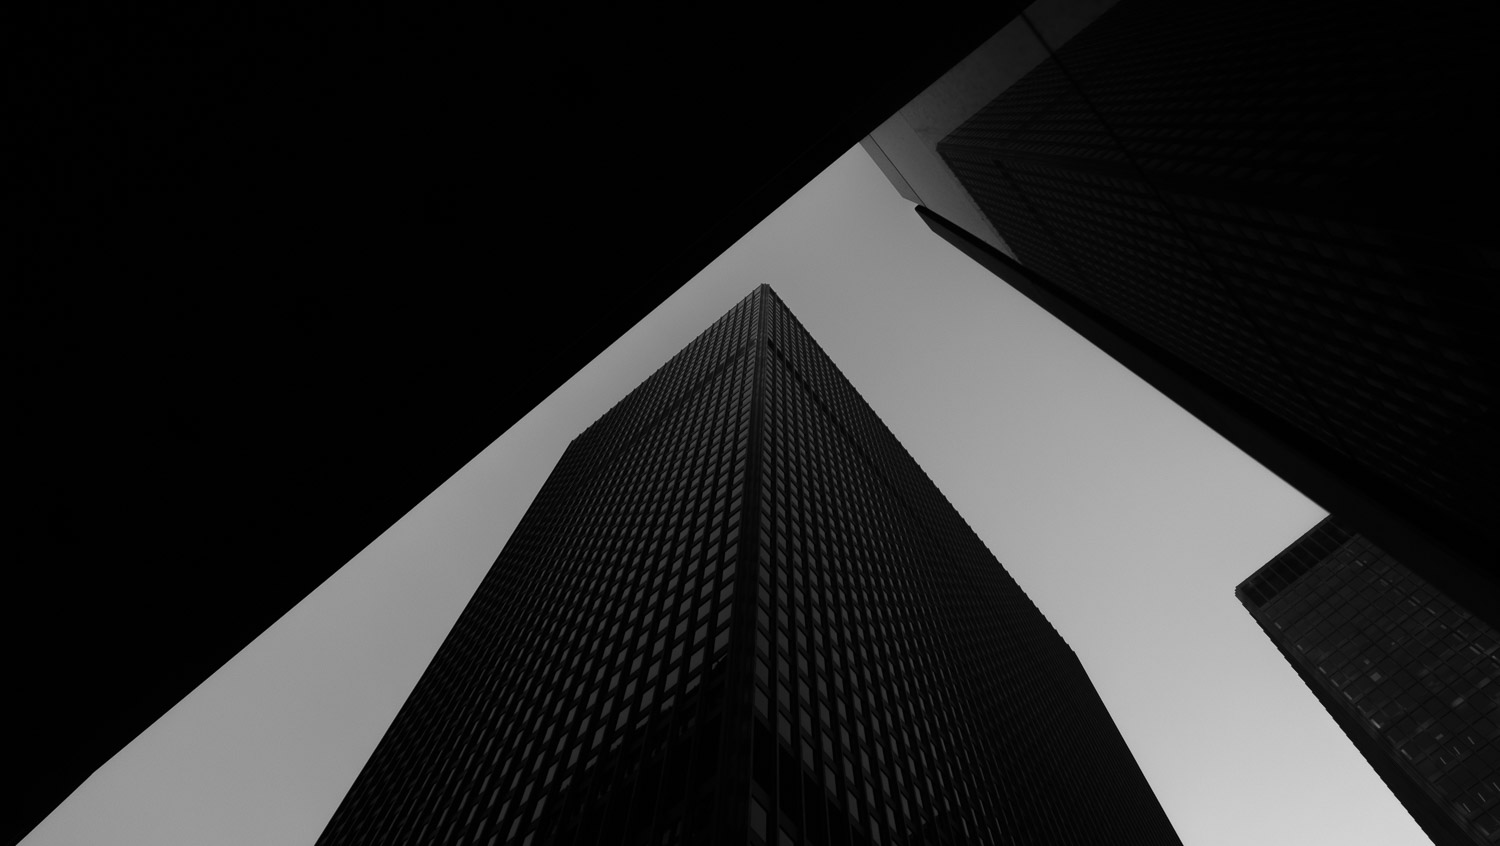 toronto-architectural-photography-007.jpg